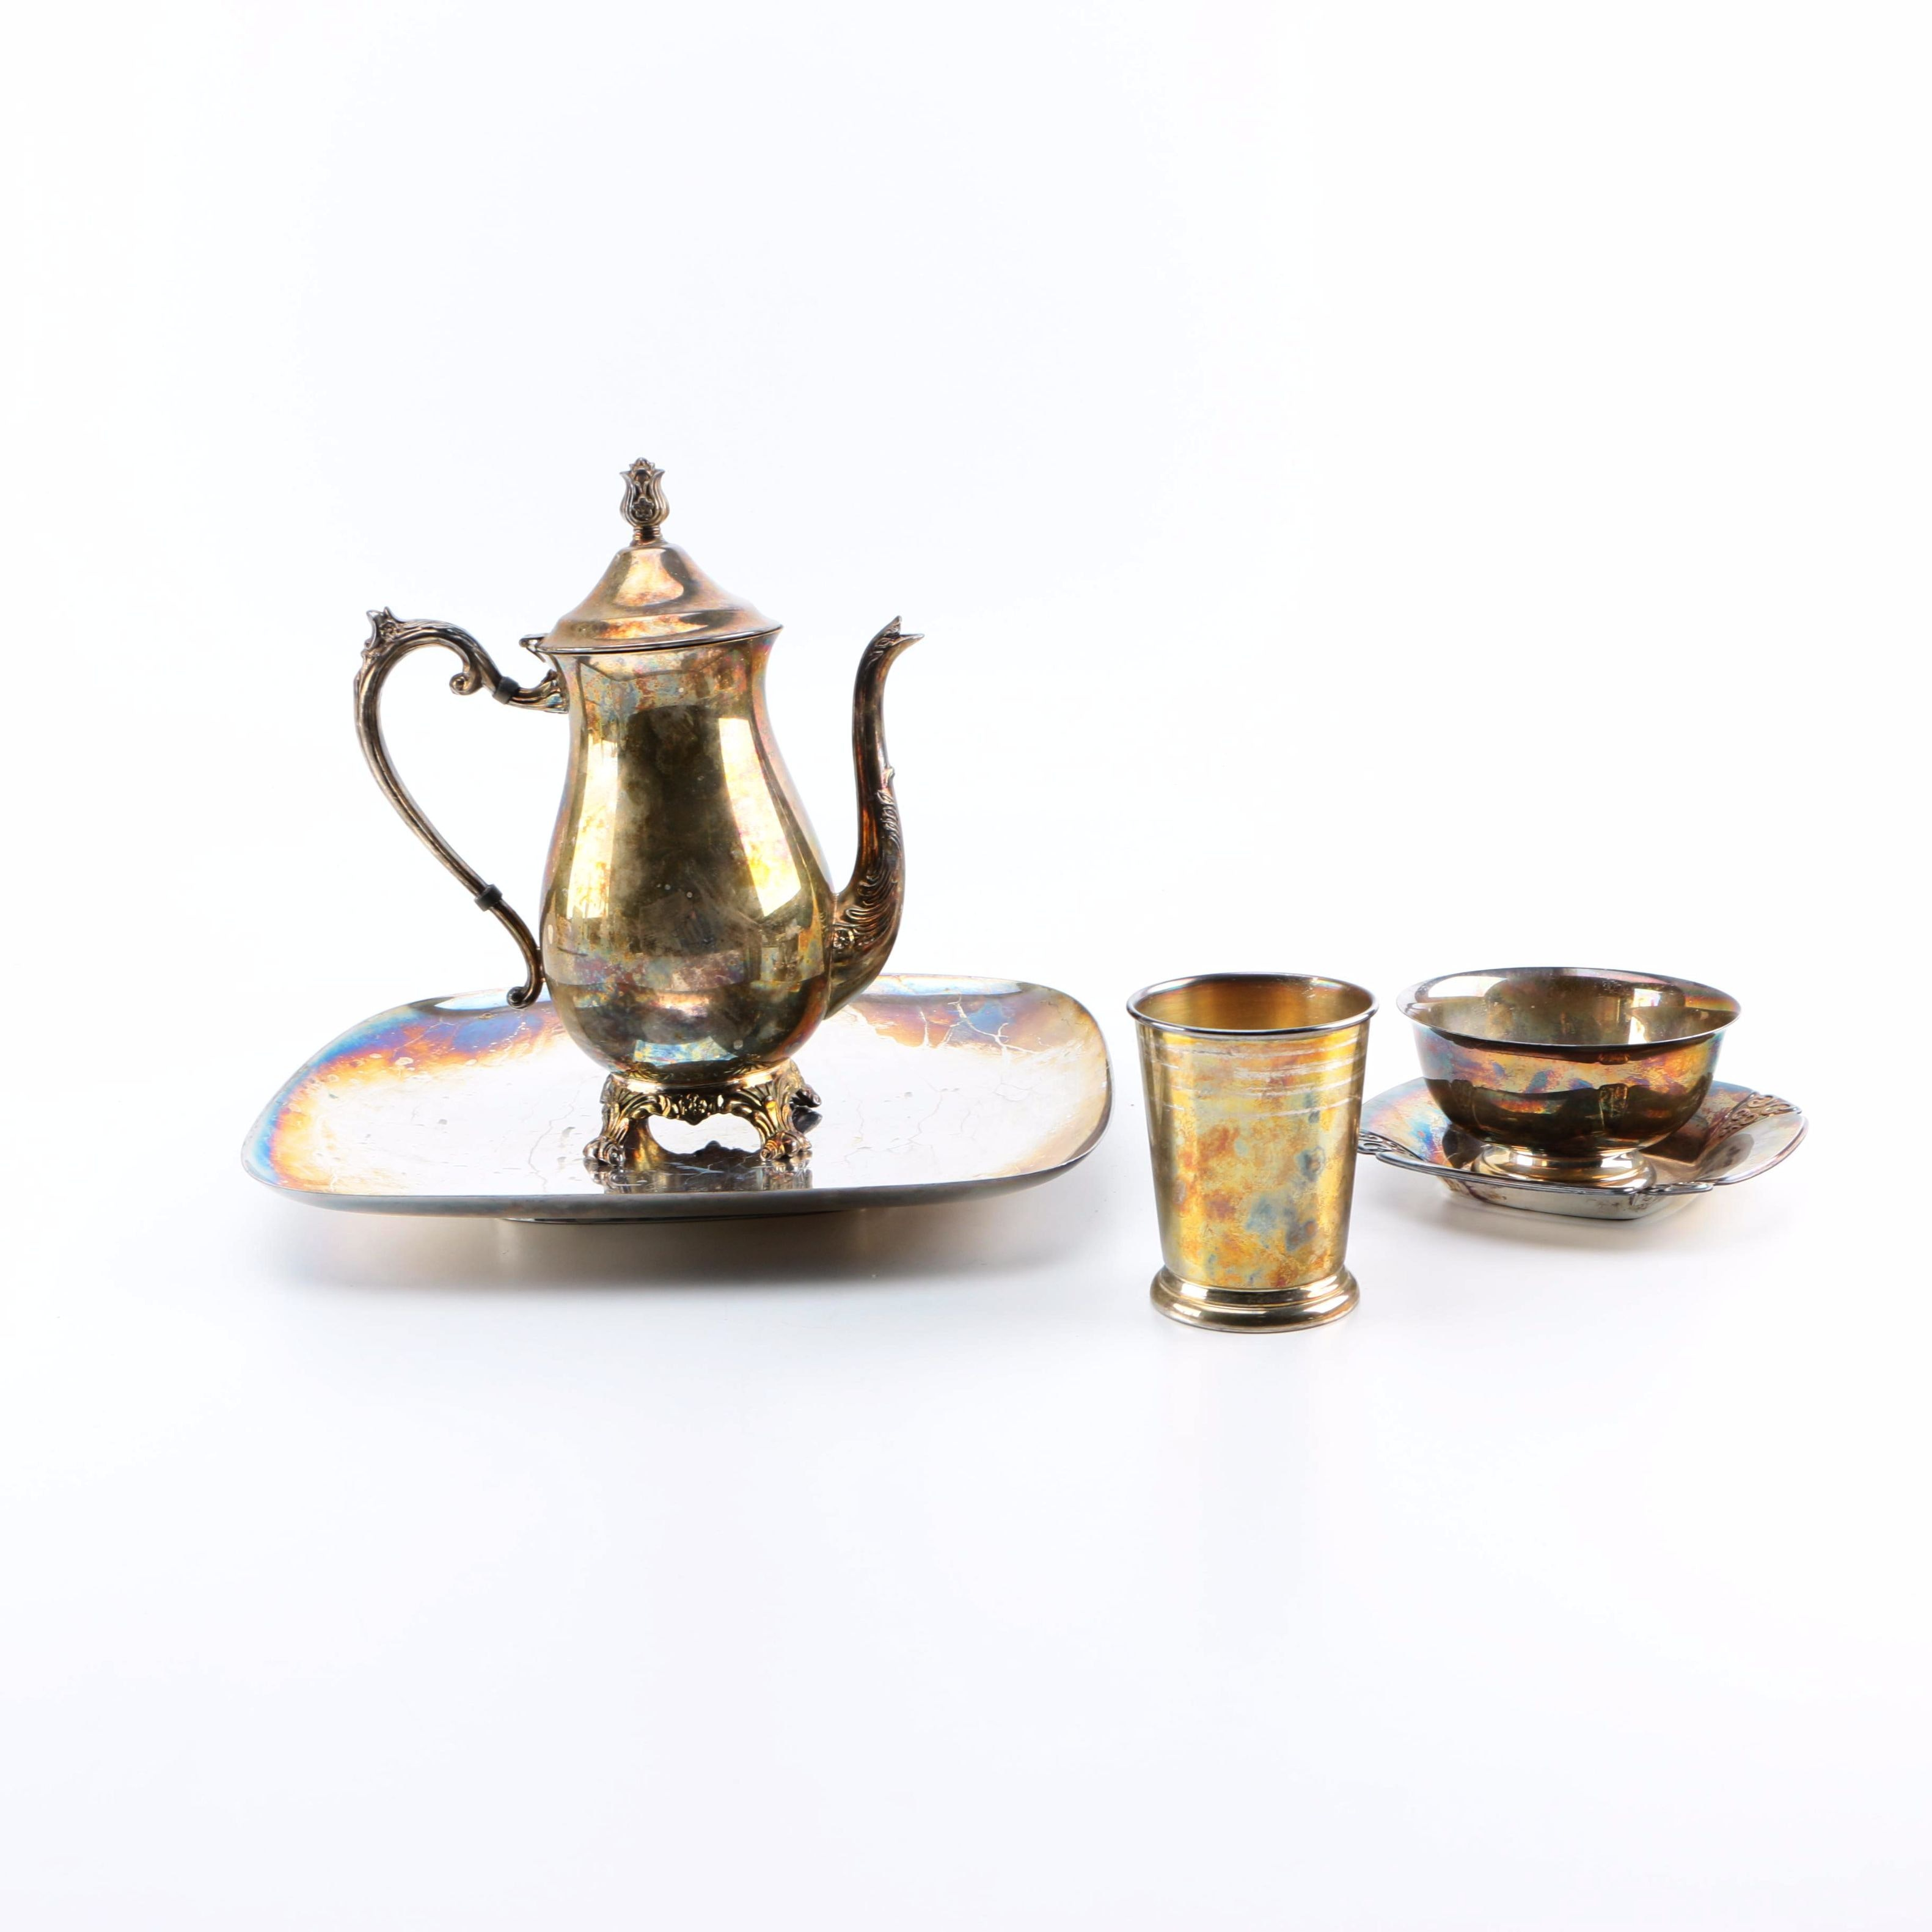 Silver Plate Coffee Pot and Other Tableware